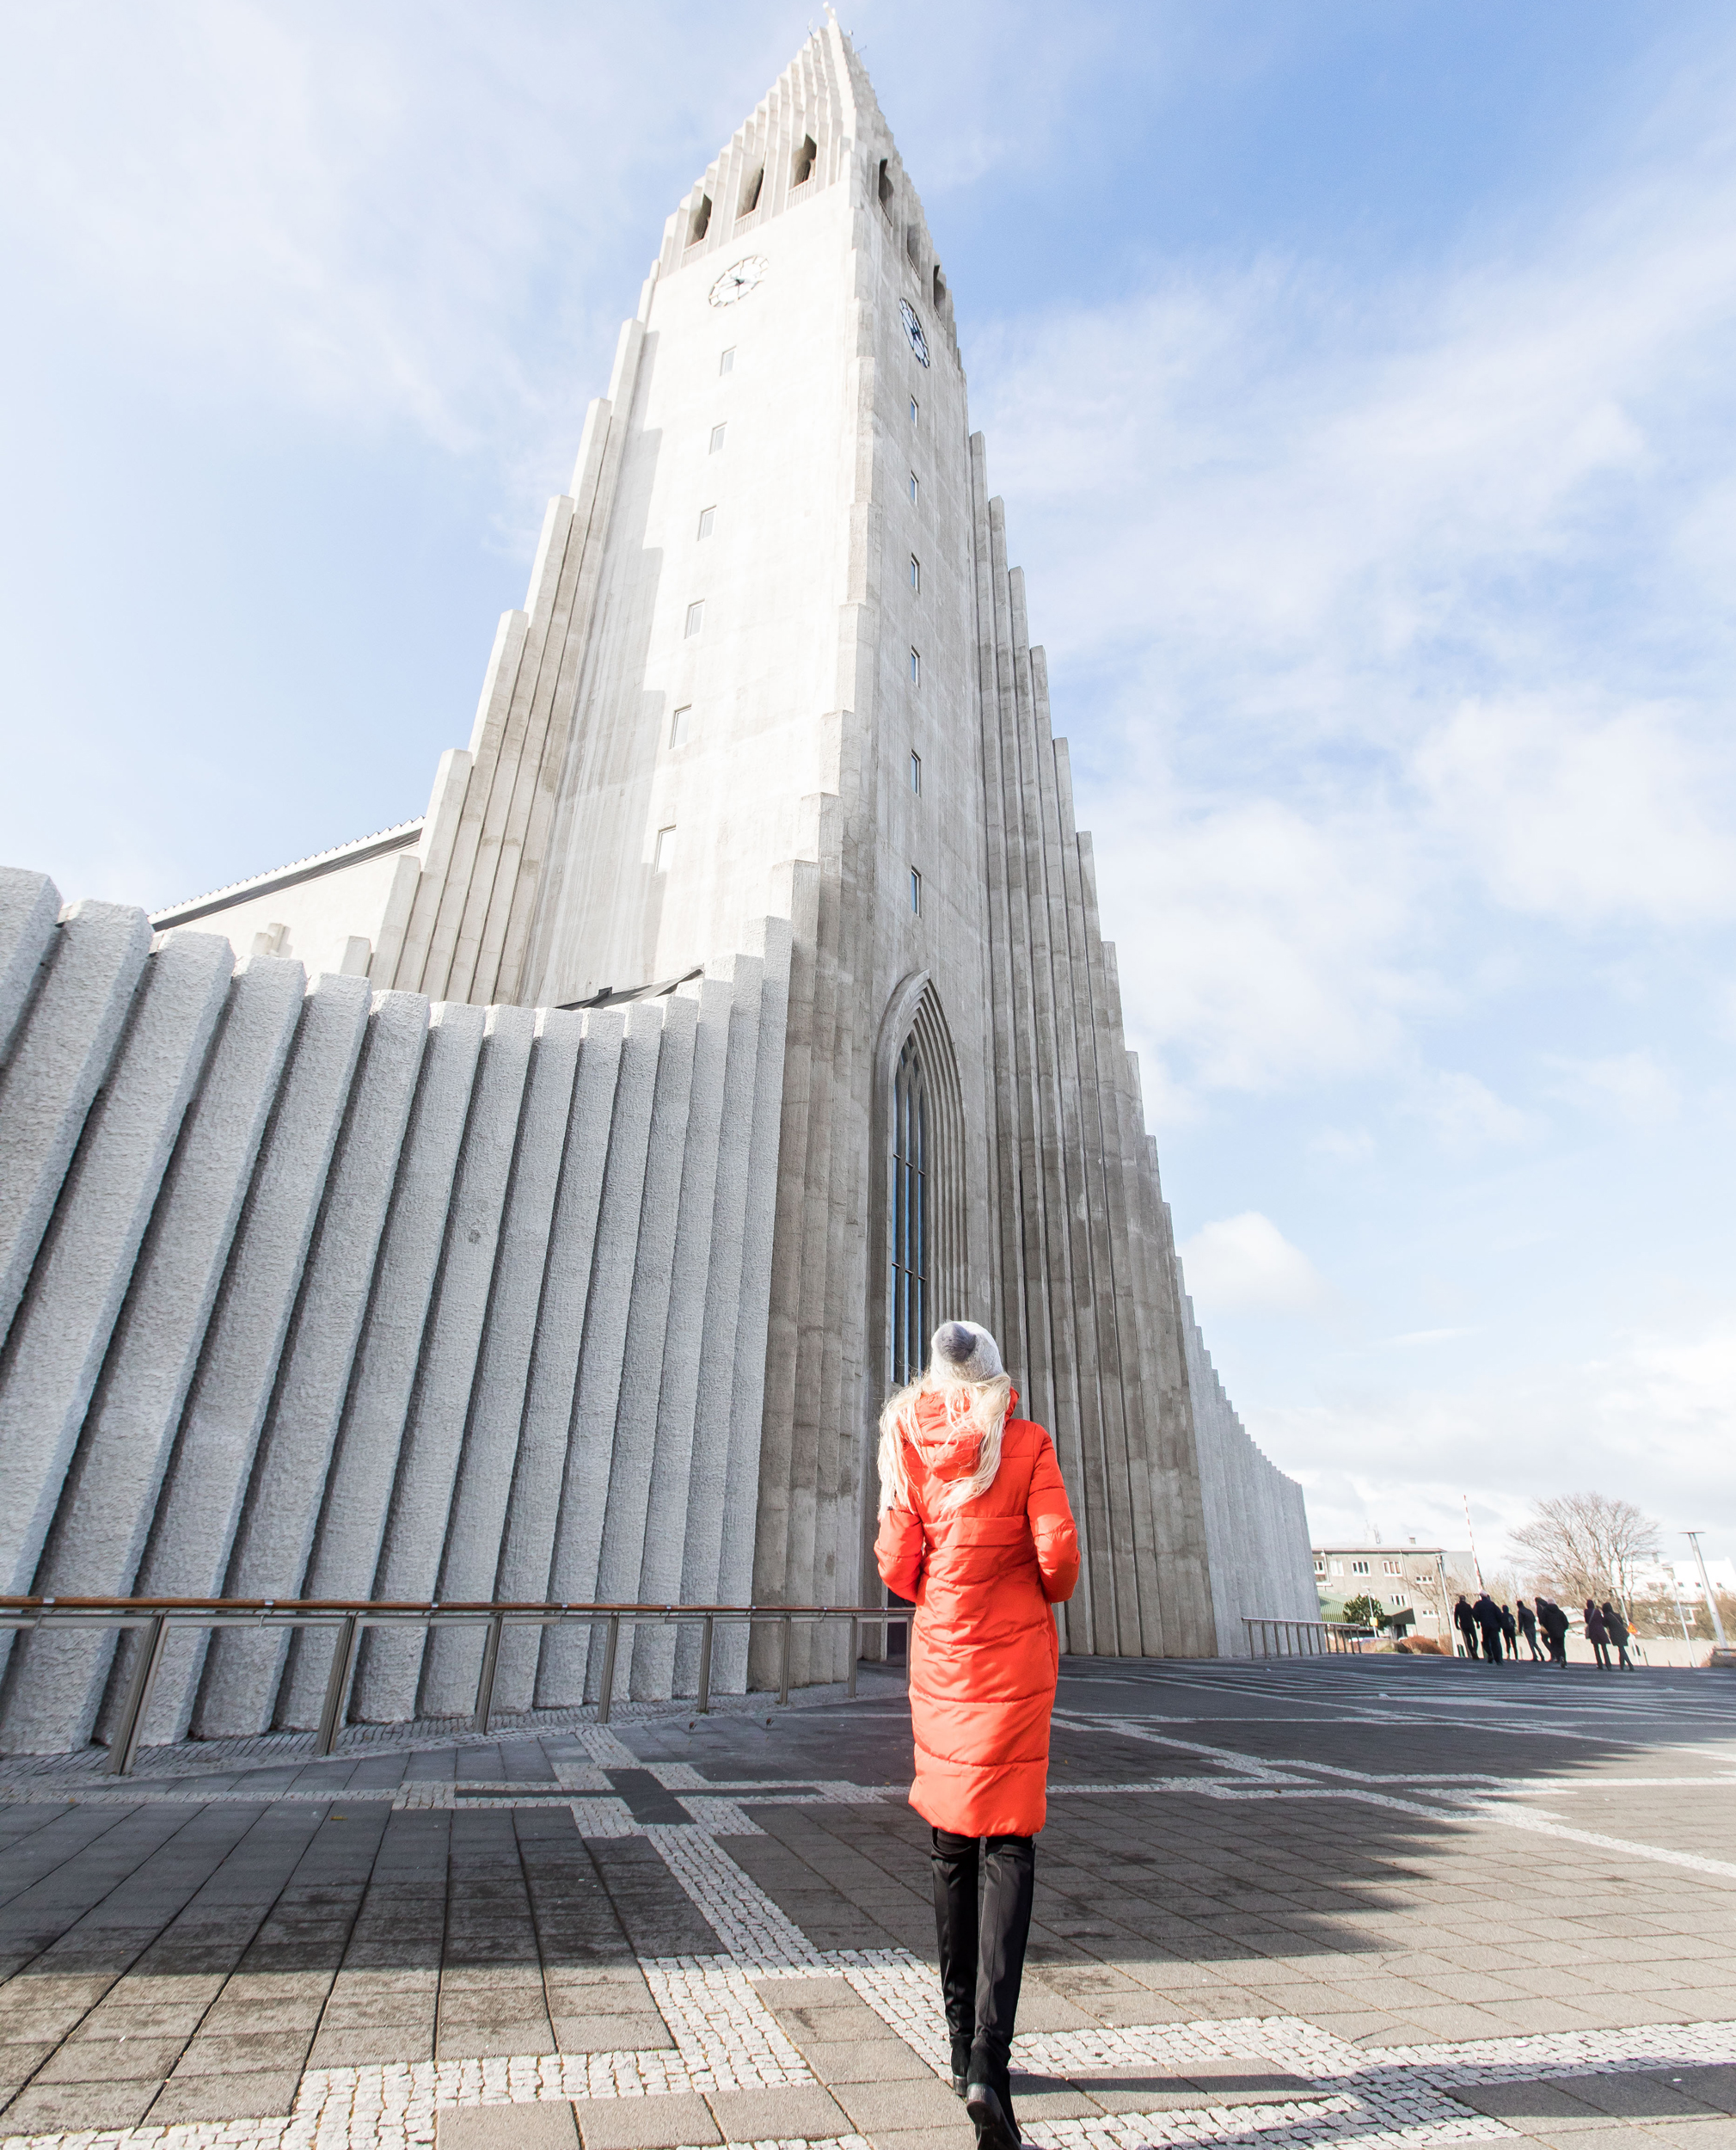 reykjavik-iceland-church-carly-mask.jpg